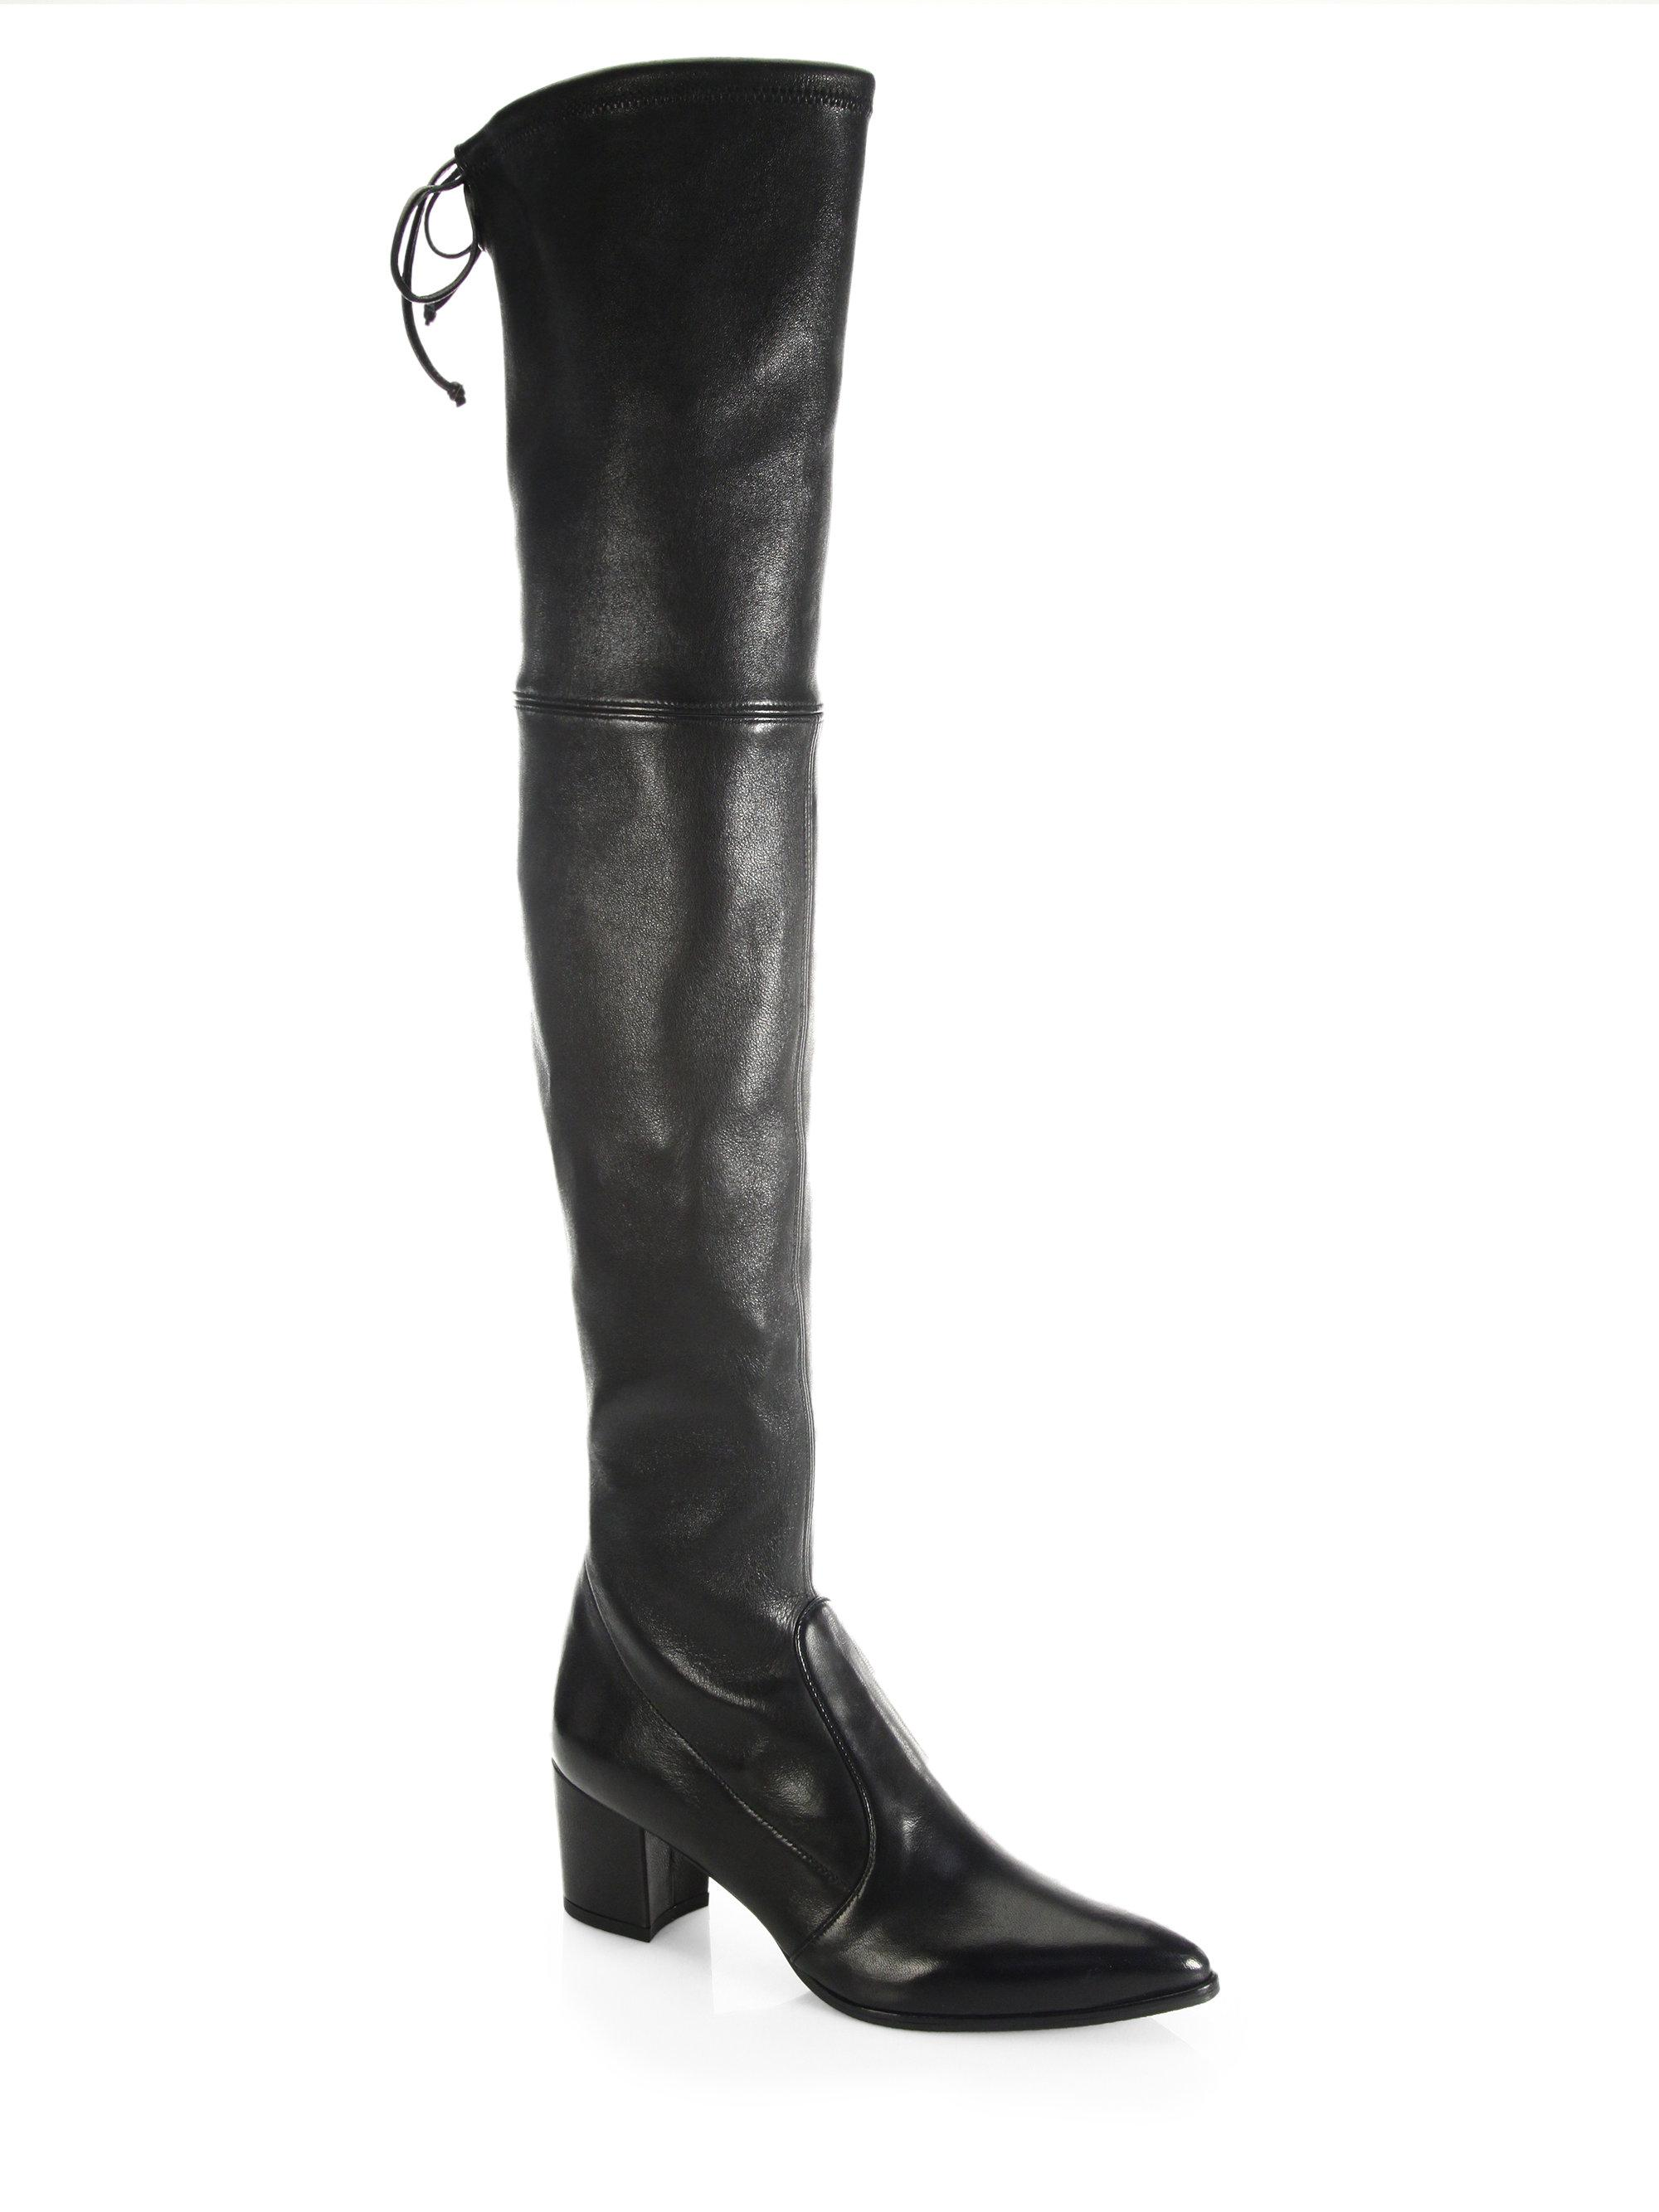 525ac335846 Lyst - Stuart Weitzman Thighland Leather Boots in Black